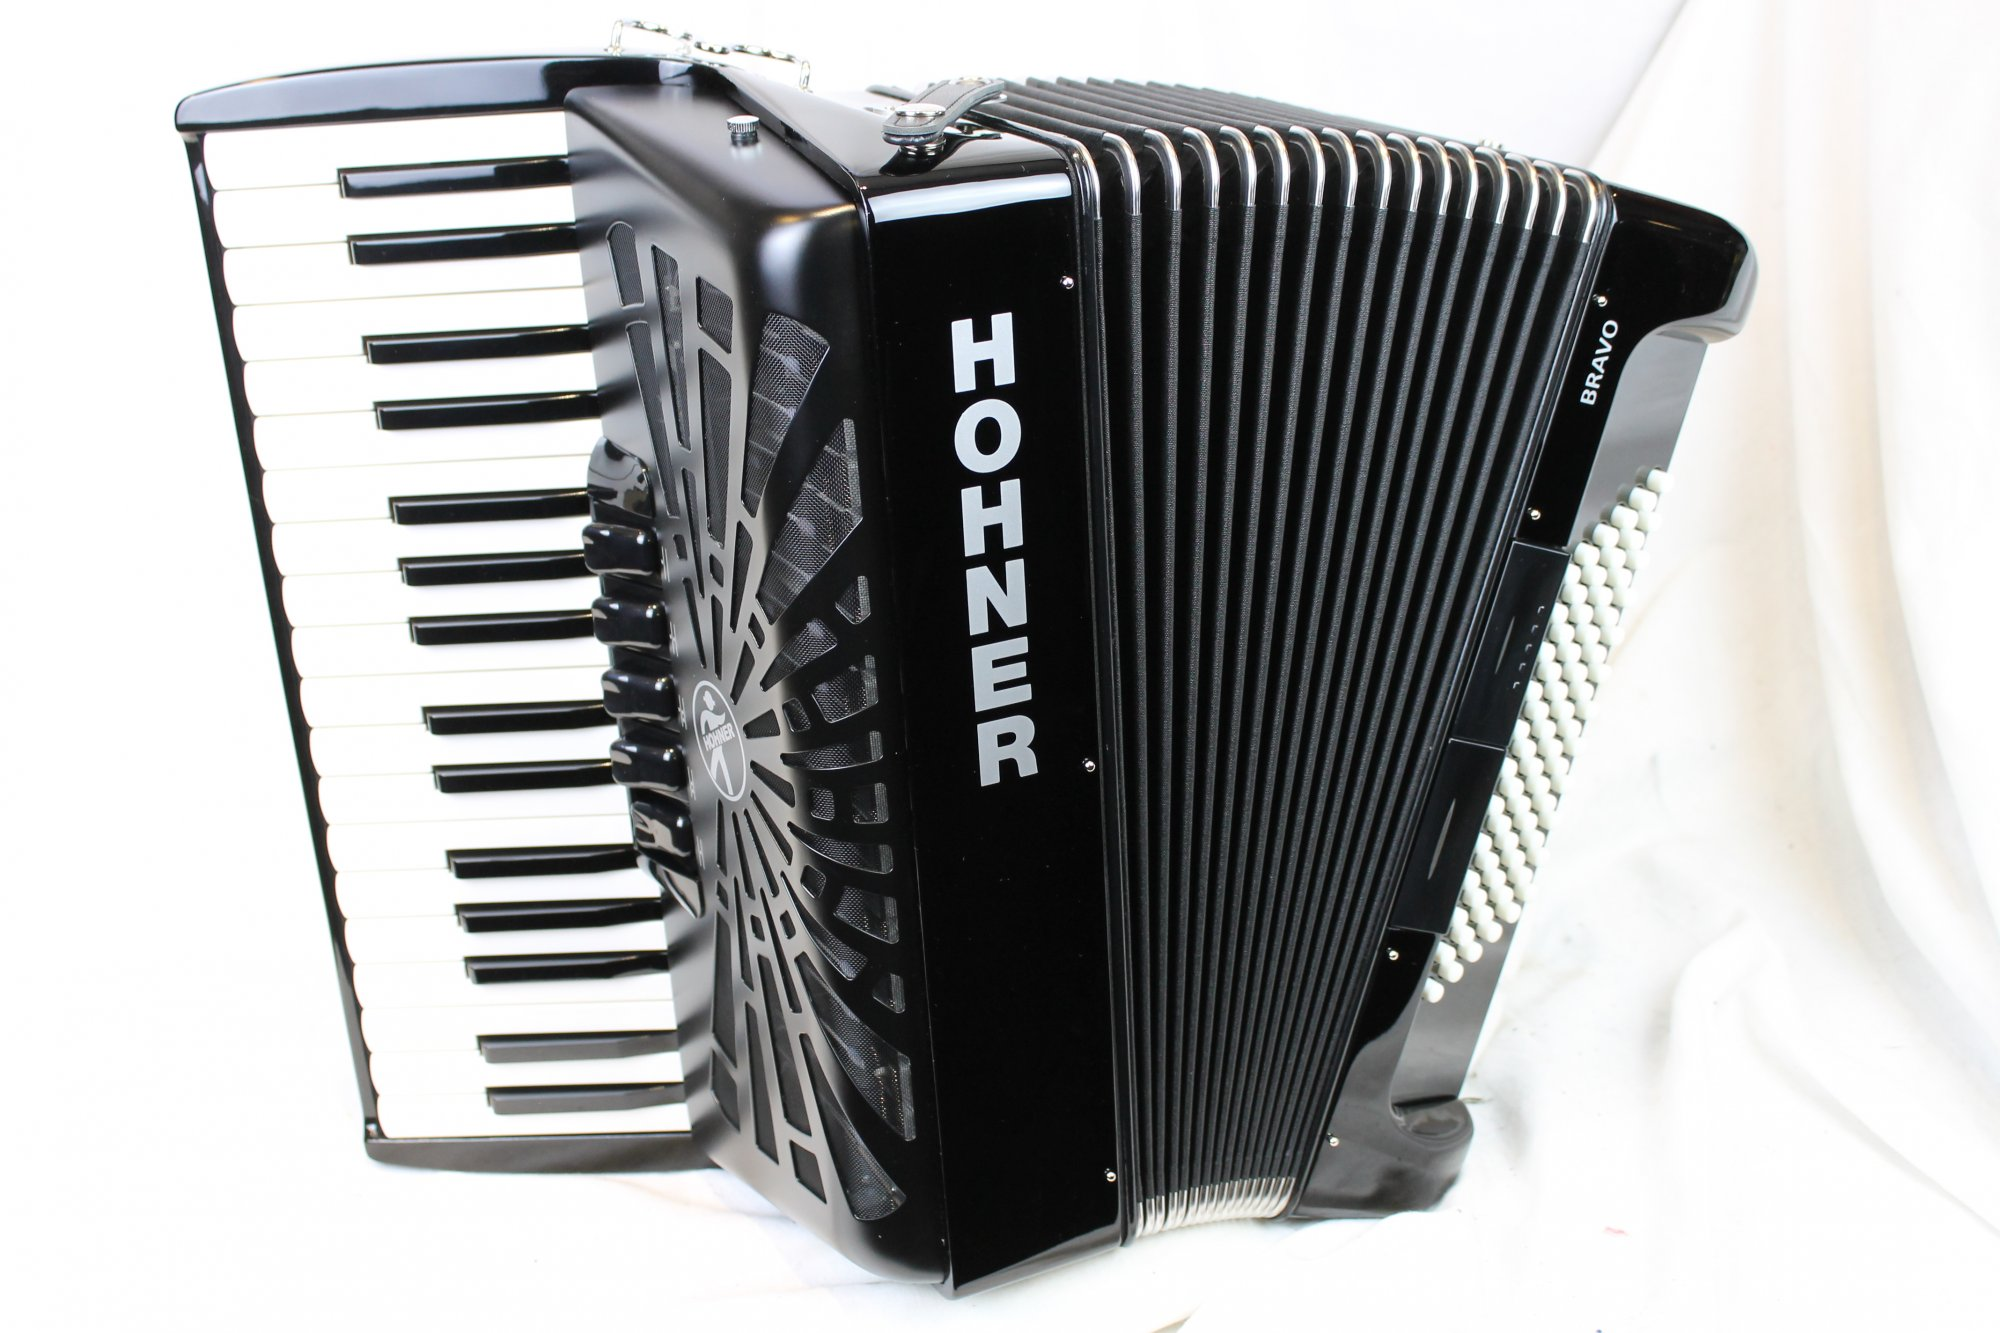 NEW Black Hohner Bravo III Piano Accordion LMM 34 72